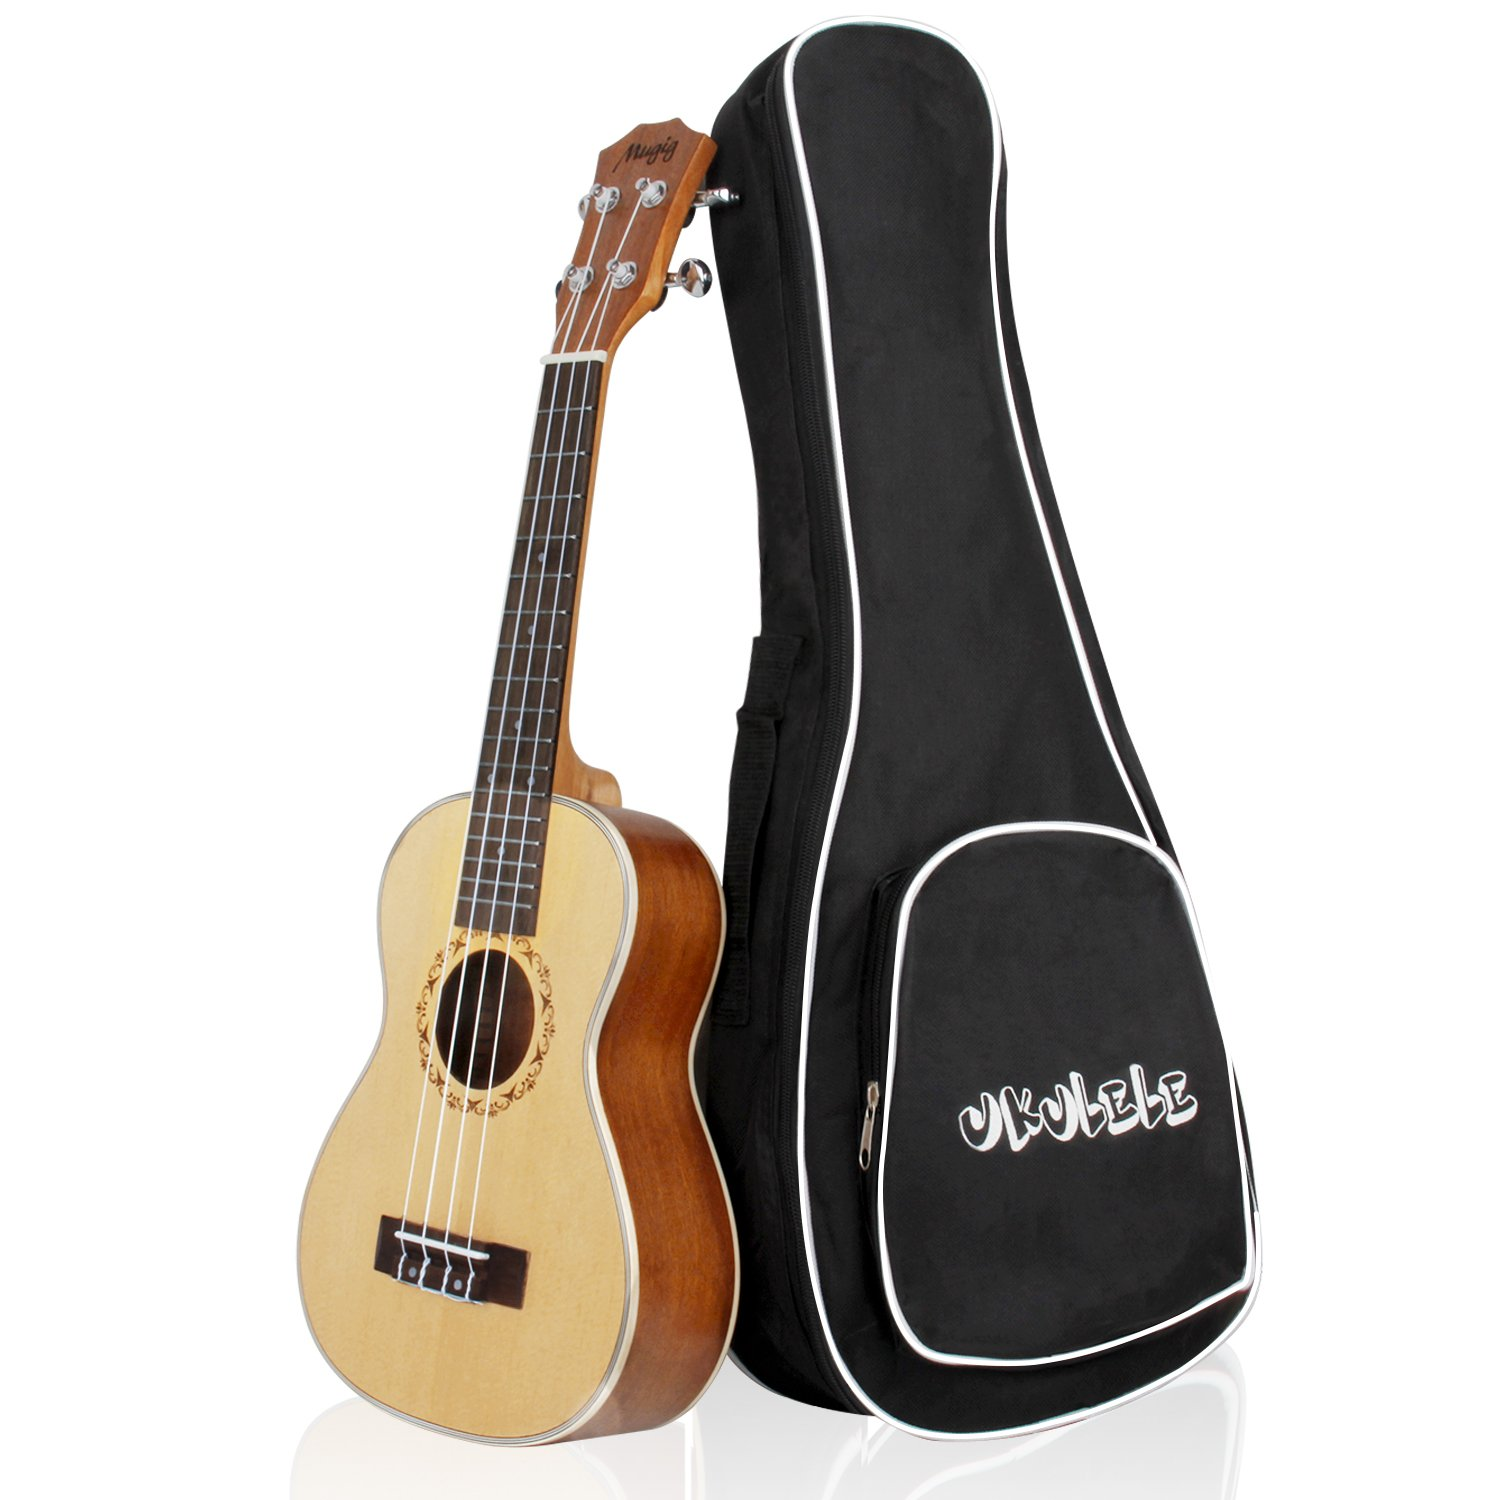 Ukulele 23 Inch Concert Ukulele with Bag Spruce Top Panel, Rosewood Fretboard 4 Strings Instrument with Nylon Strings Silver Geared Tuners